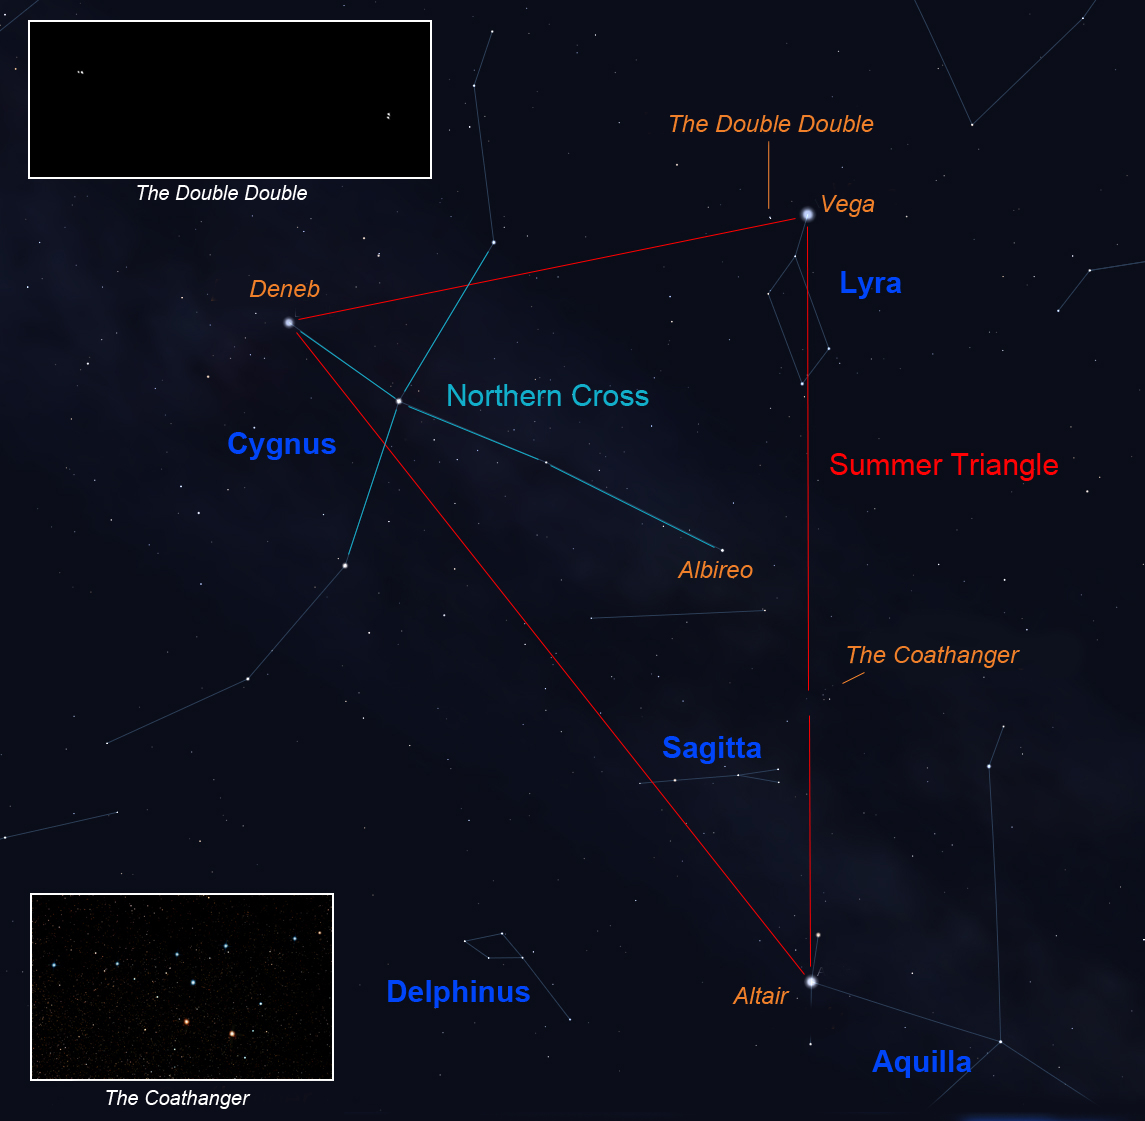 Summer Triangle